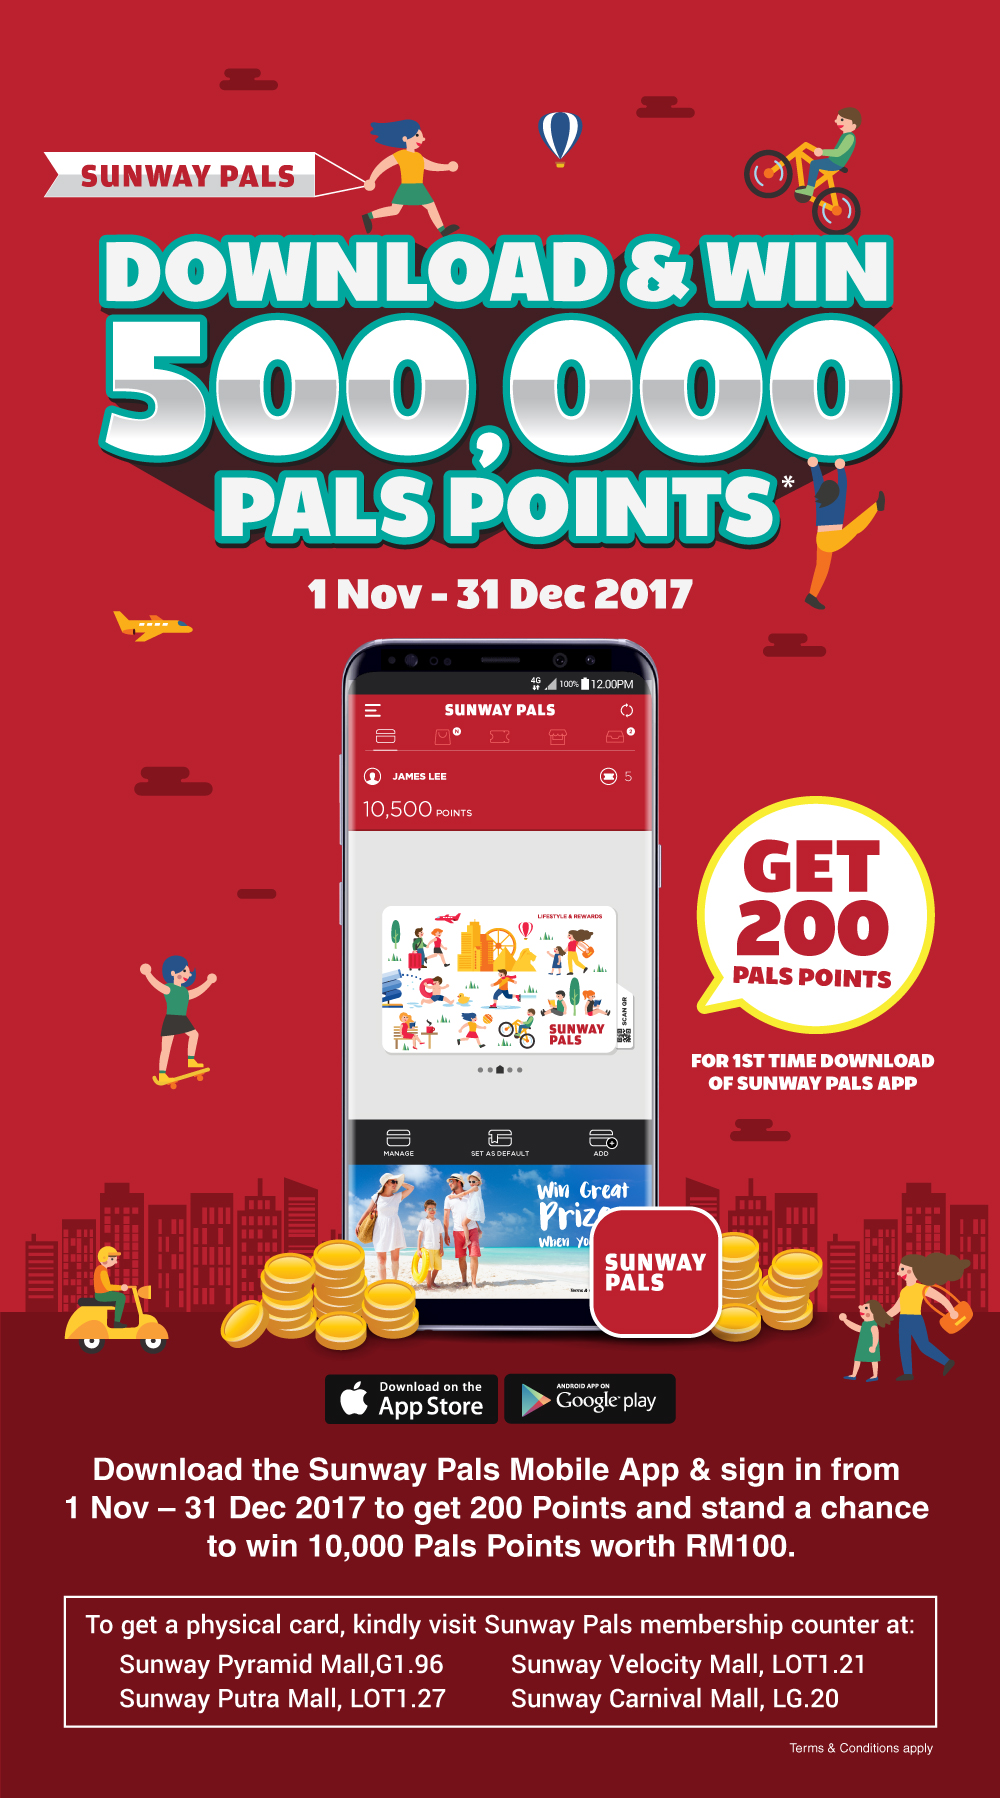 Download & Win 500,000 Pals Points